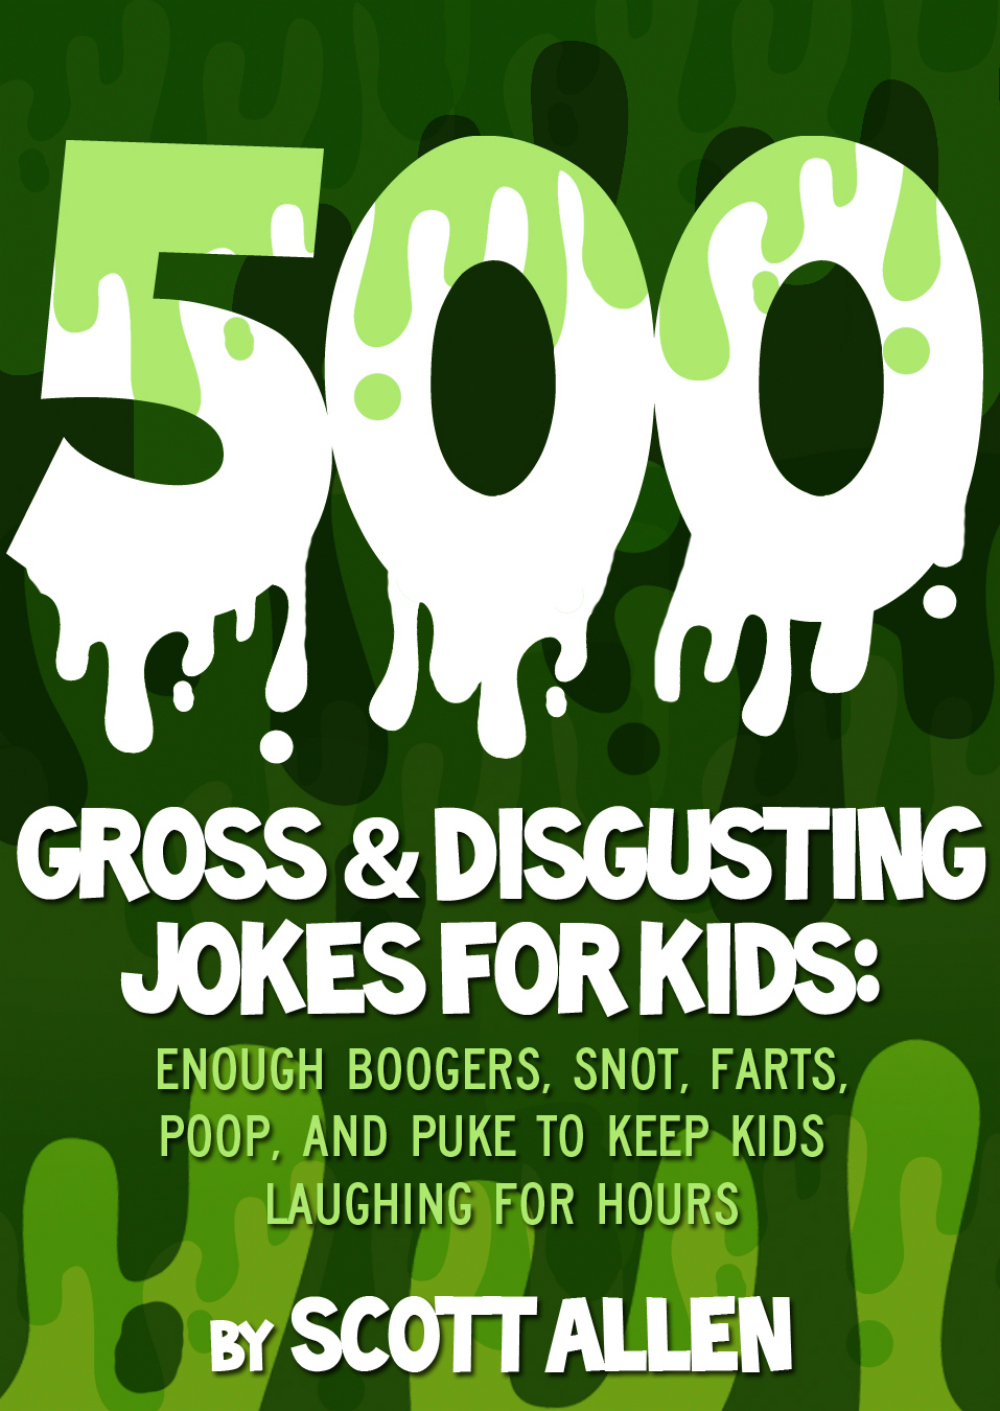 500 GROSS & DISGUSTING JOKES FOR KIDS